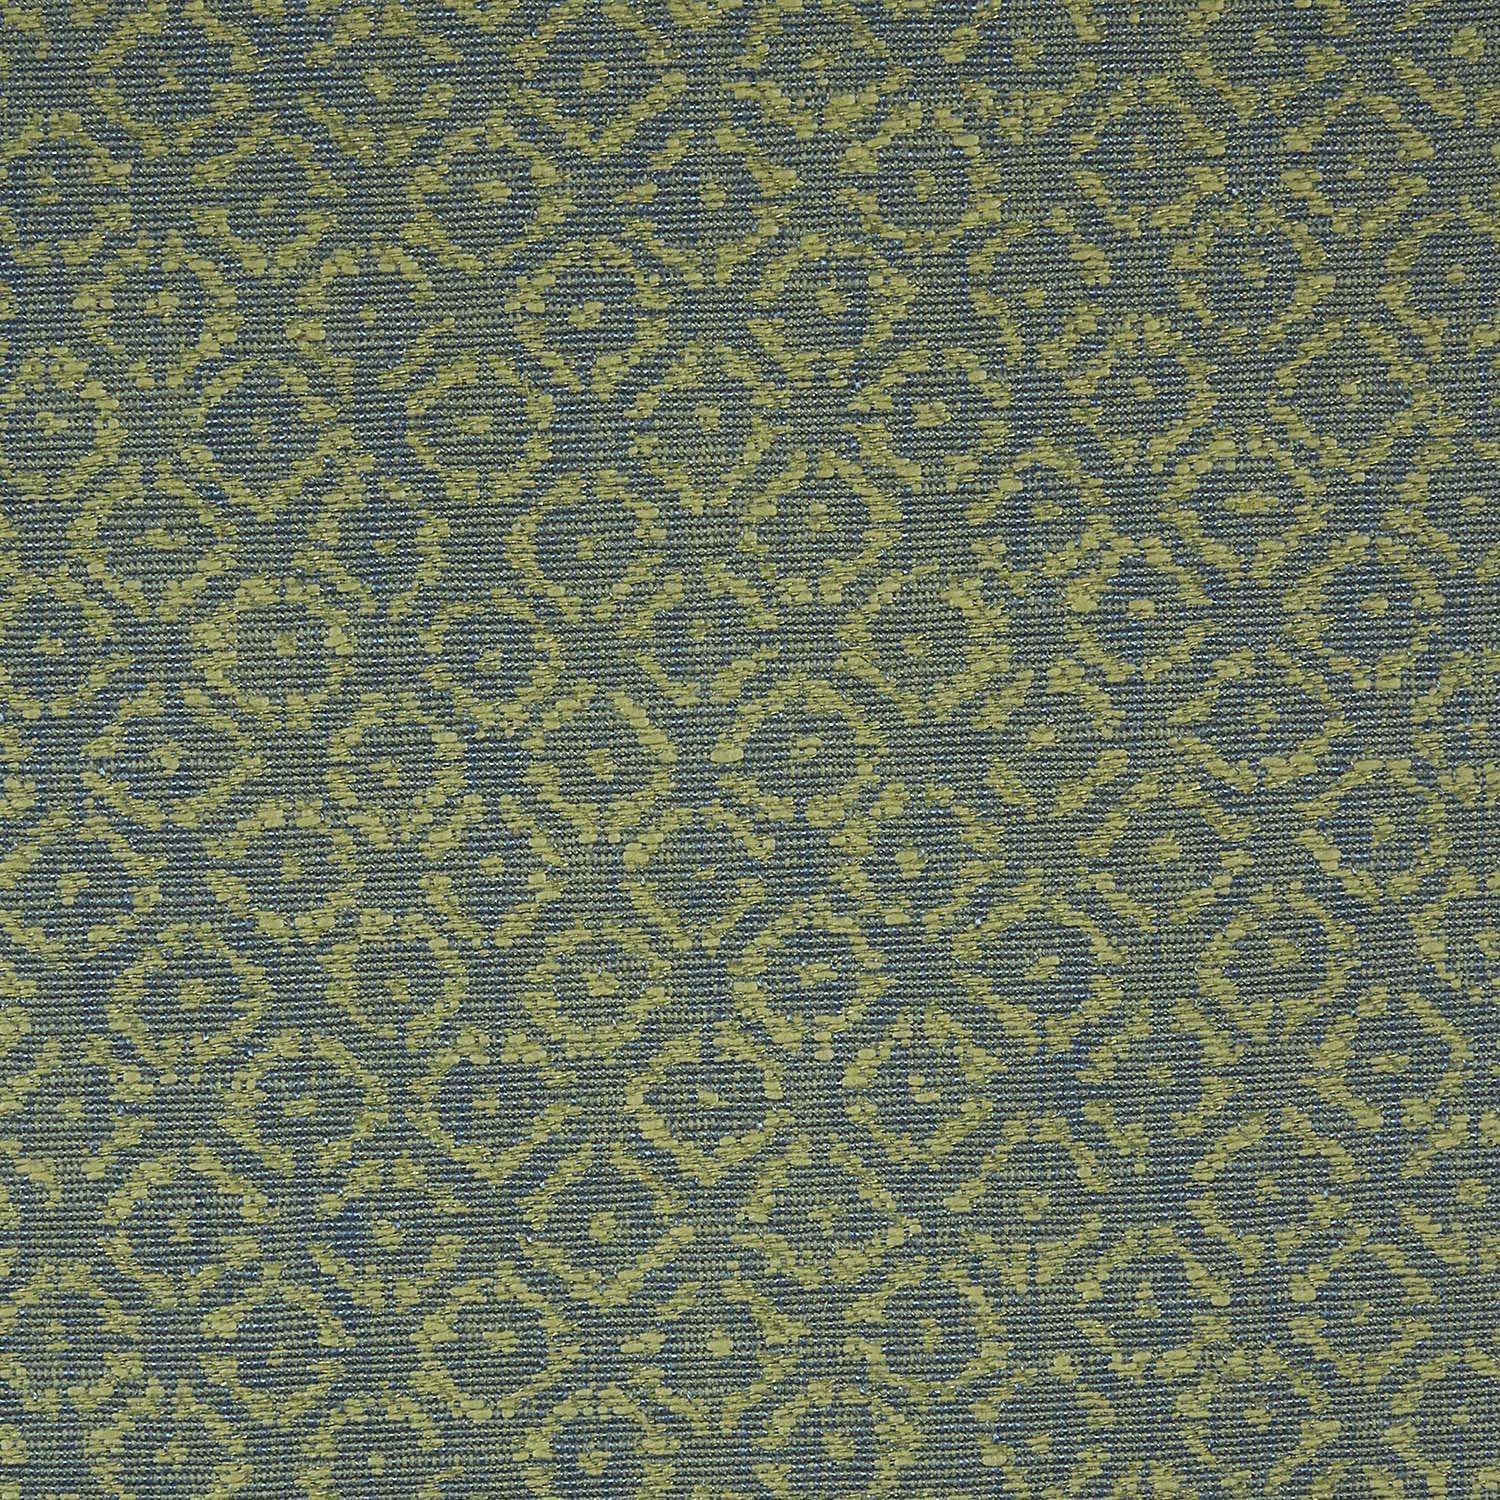 <p><strong>ALBEMARLE</strong>blue/green 1600-05<a href=/the-langham-collection/albemarle-blue-green-1600-05>More →</a></p>